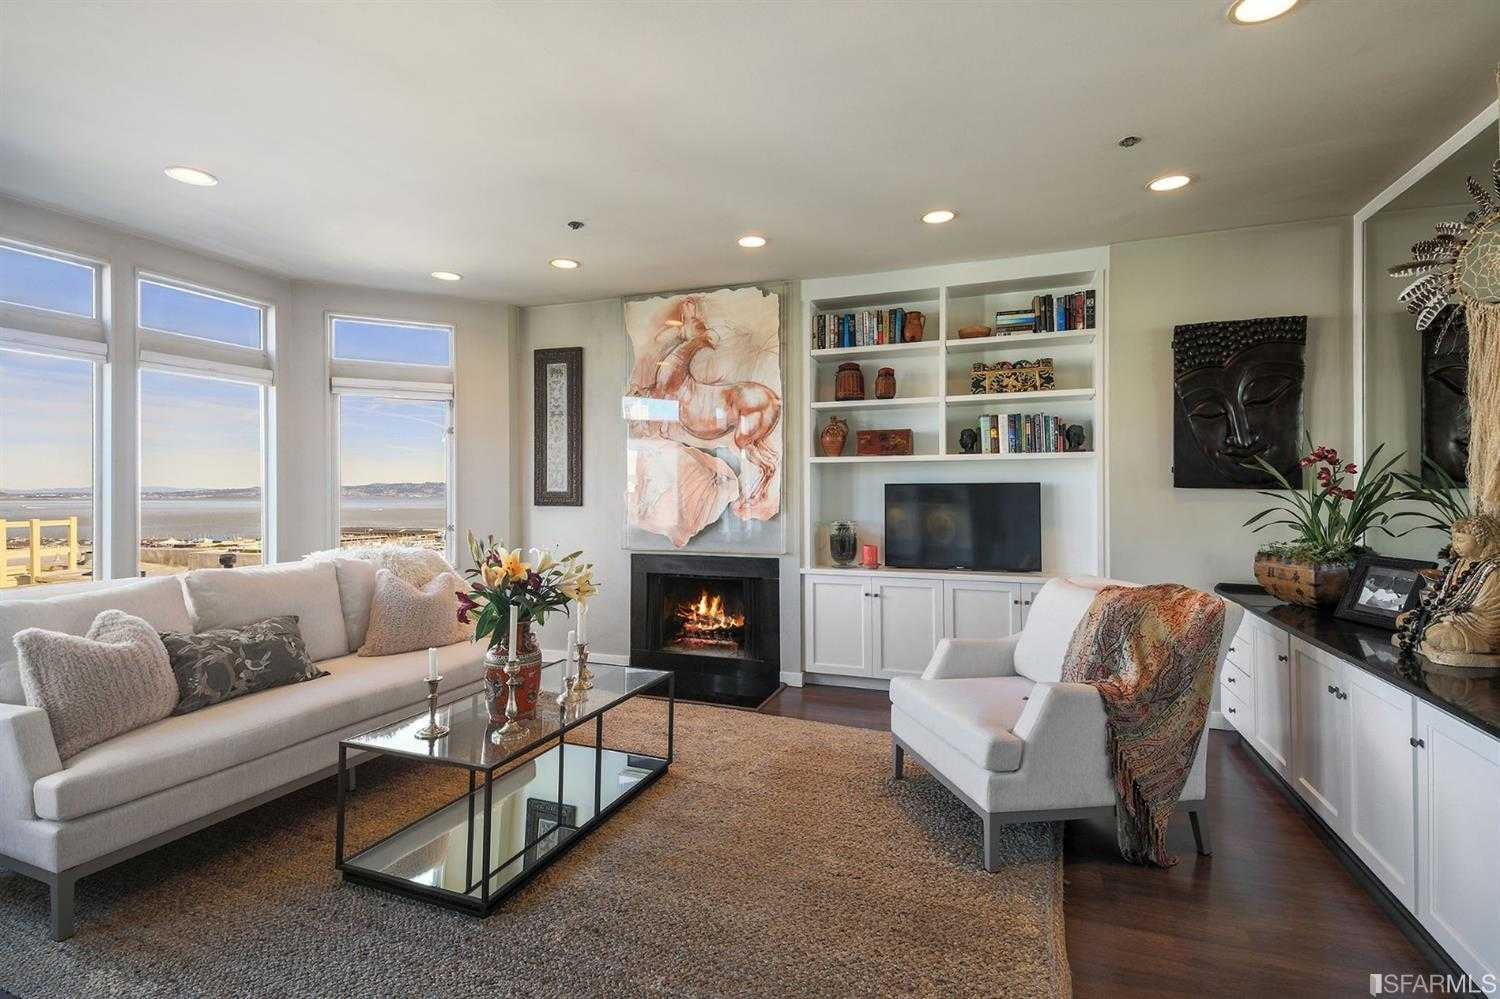 $1,599,000 - 2Br/2Ba -  for Sale in San Francisco